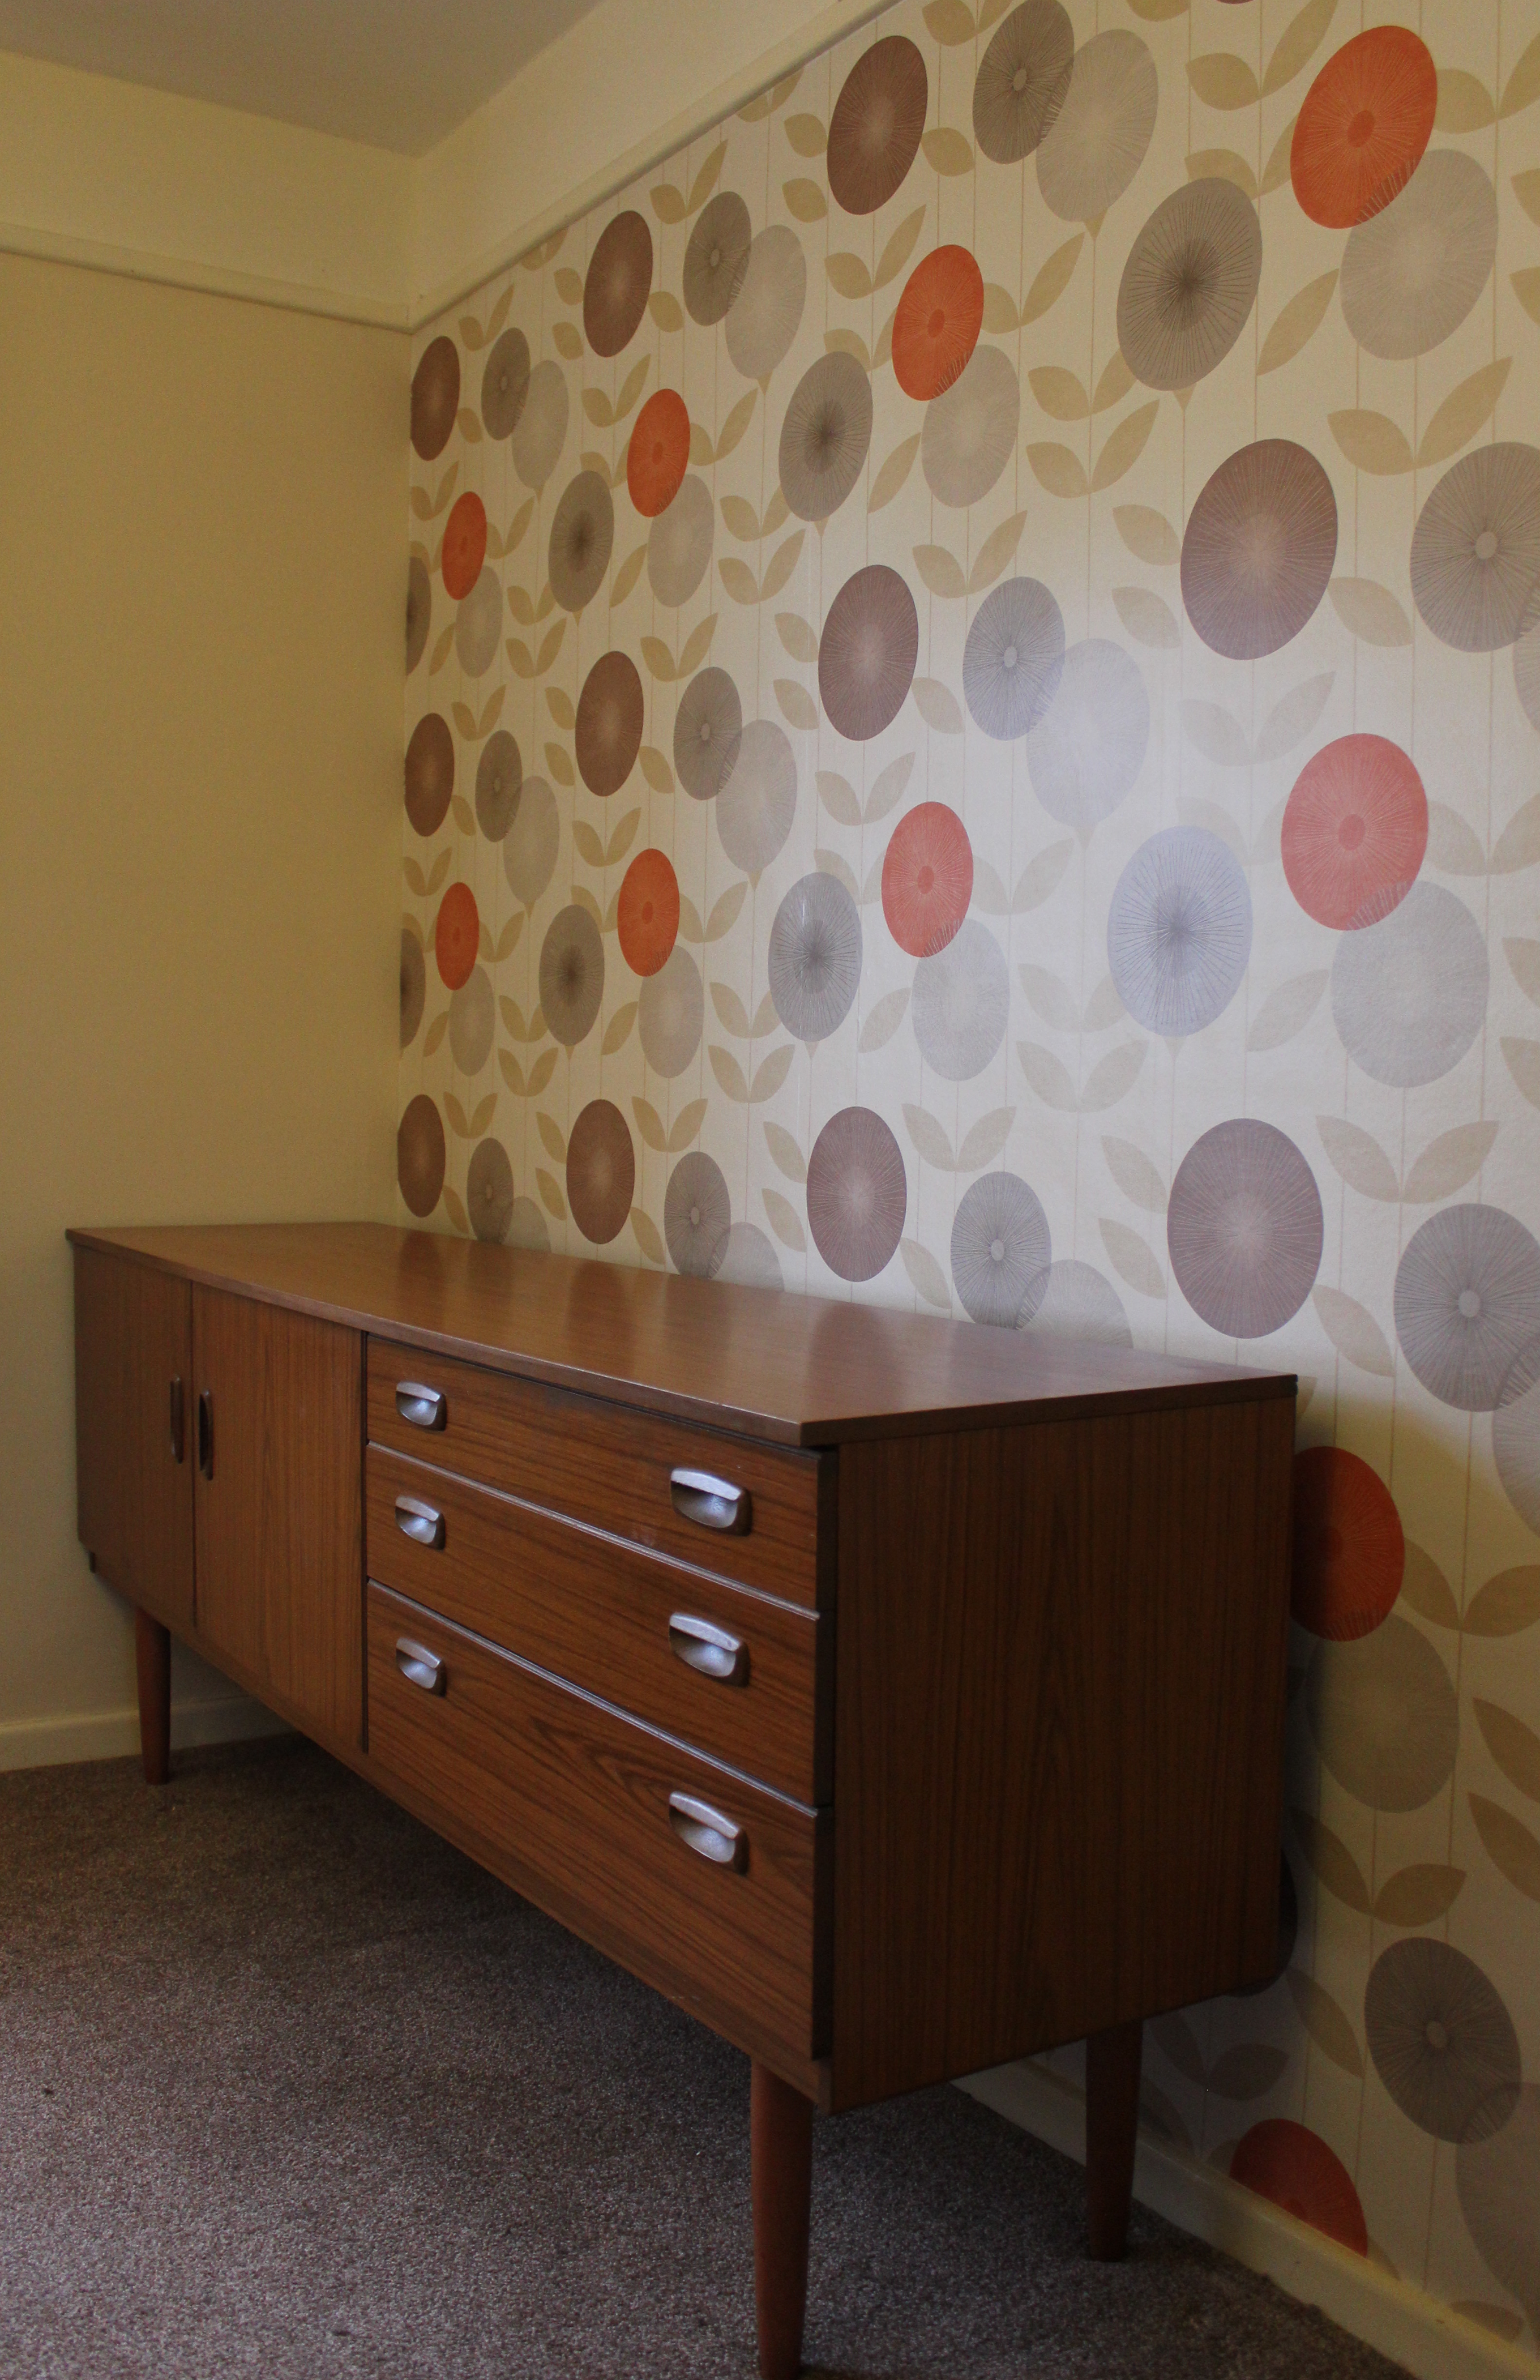 Wallpapering For A Living Room Inspirations For A Retro Living Room The Wallpaper Is Finally Up